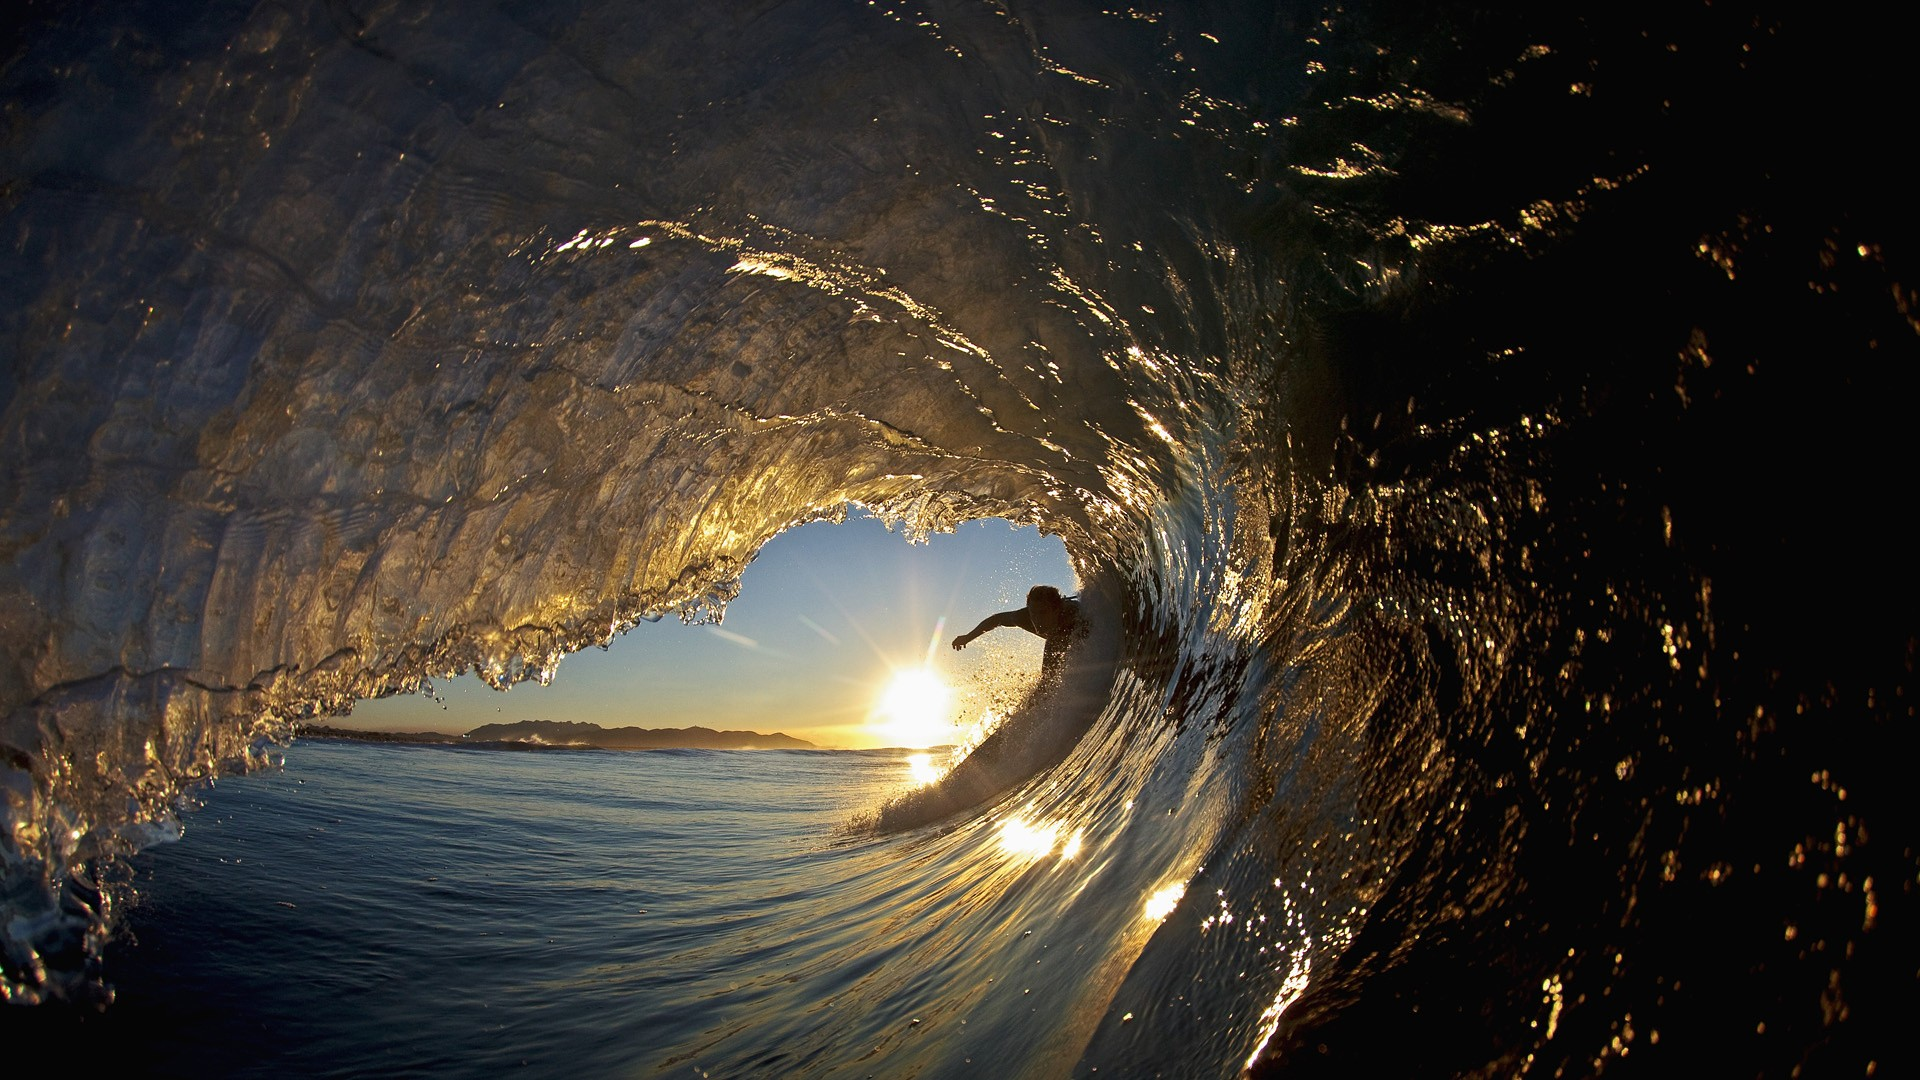 Photo of a surfer wave